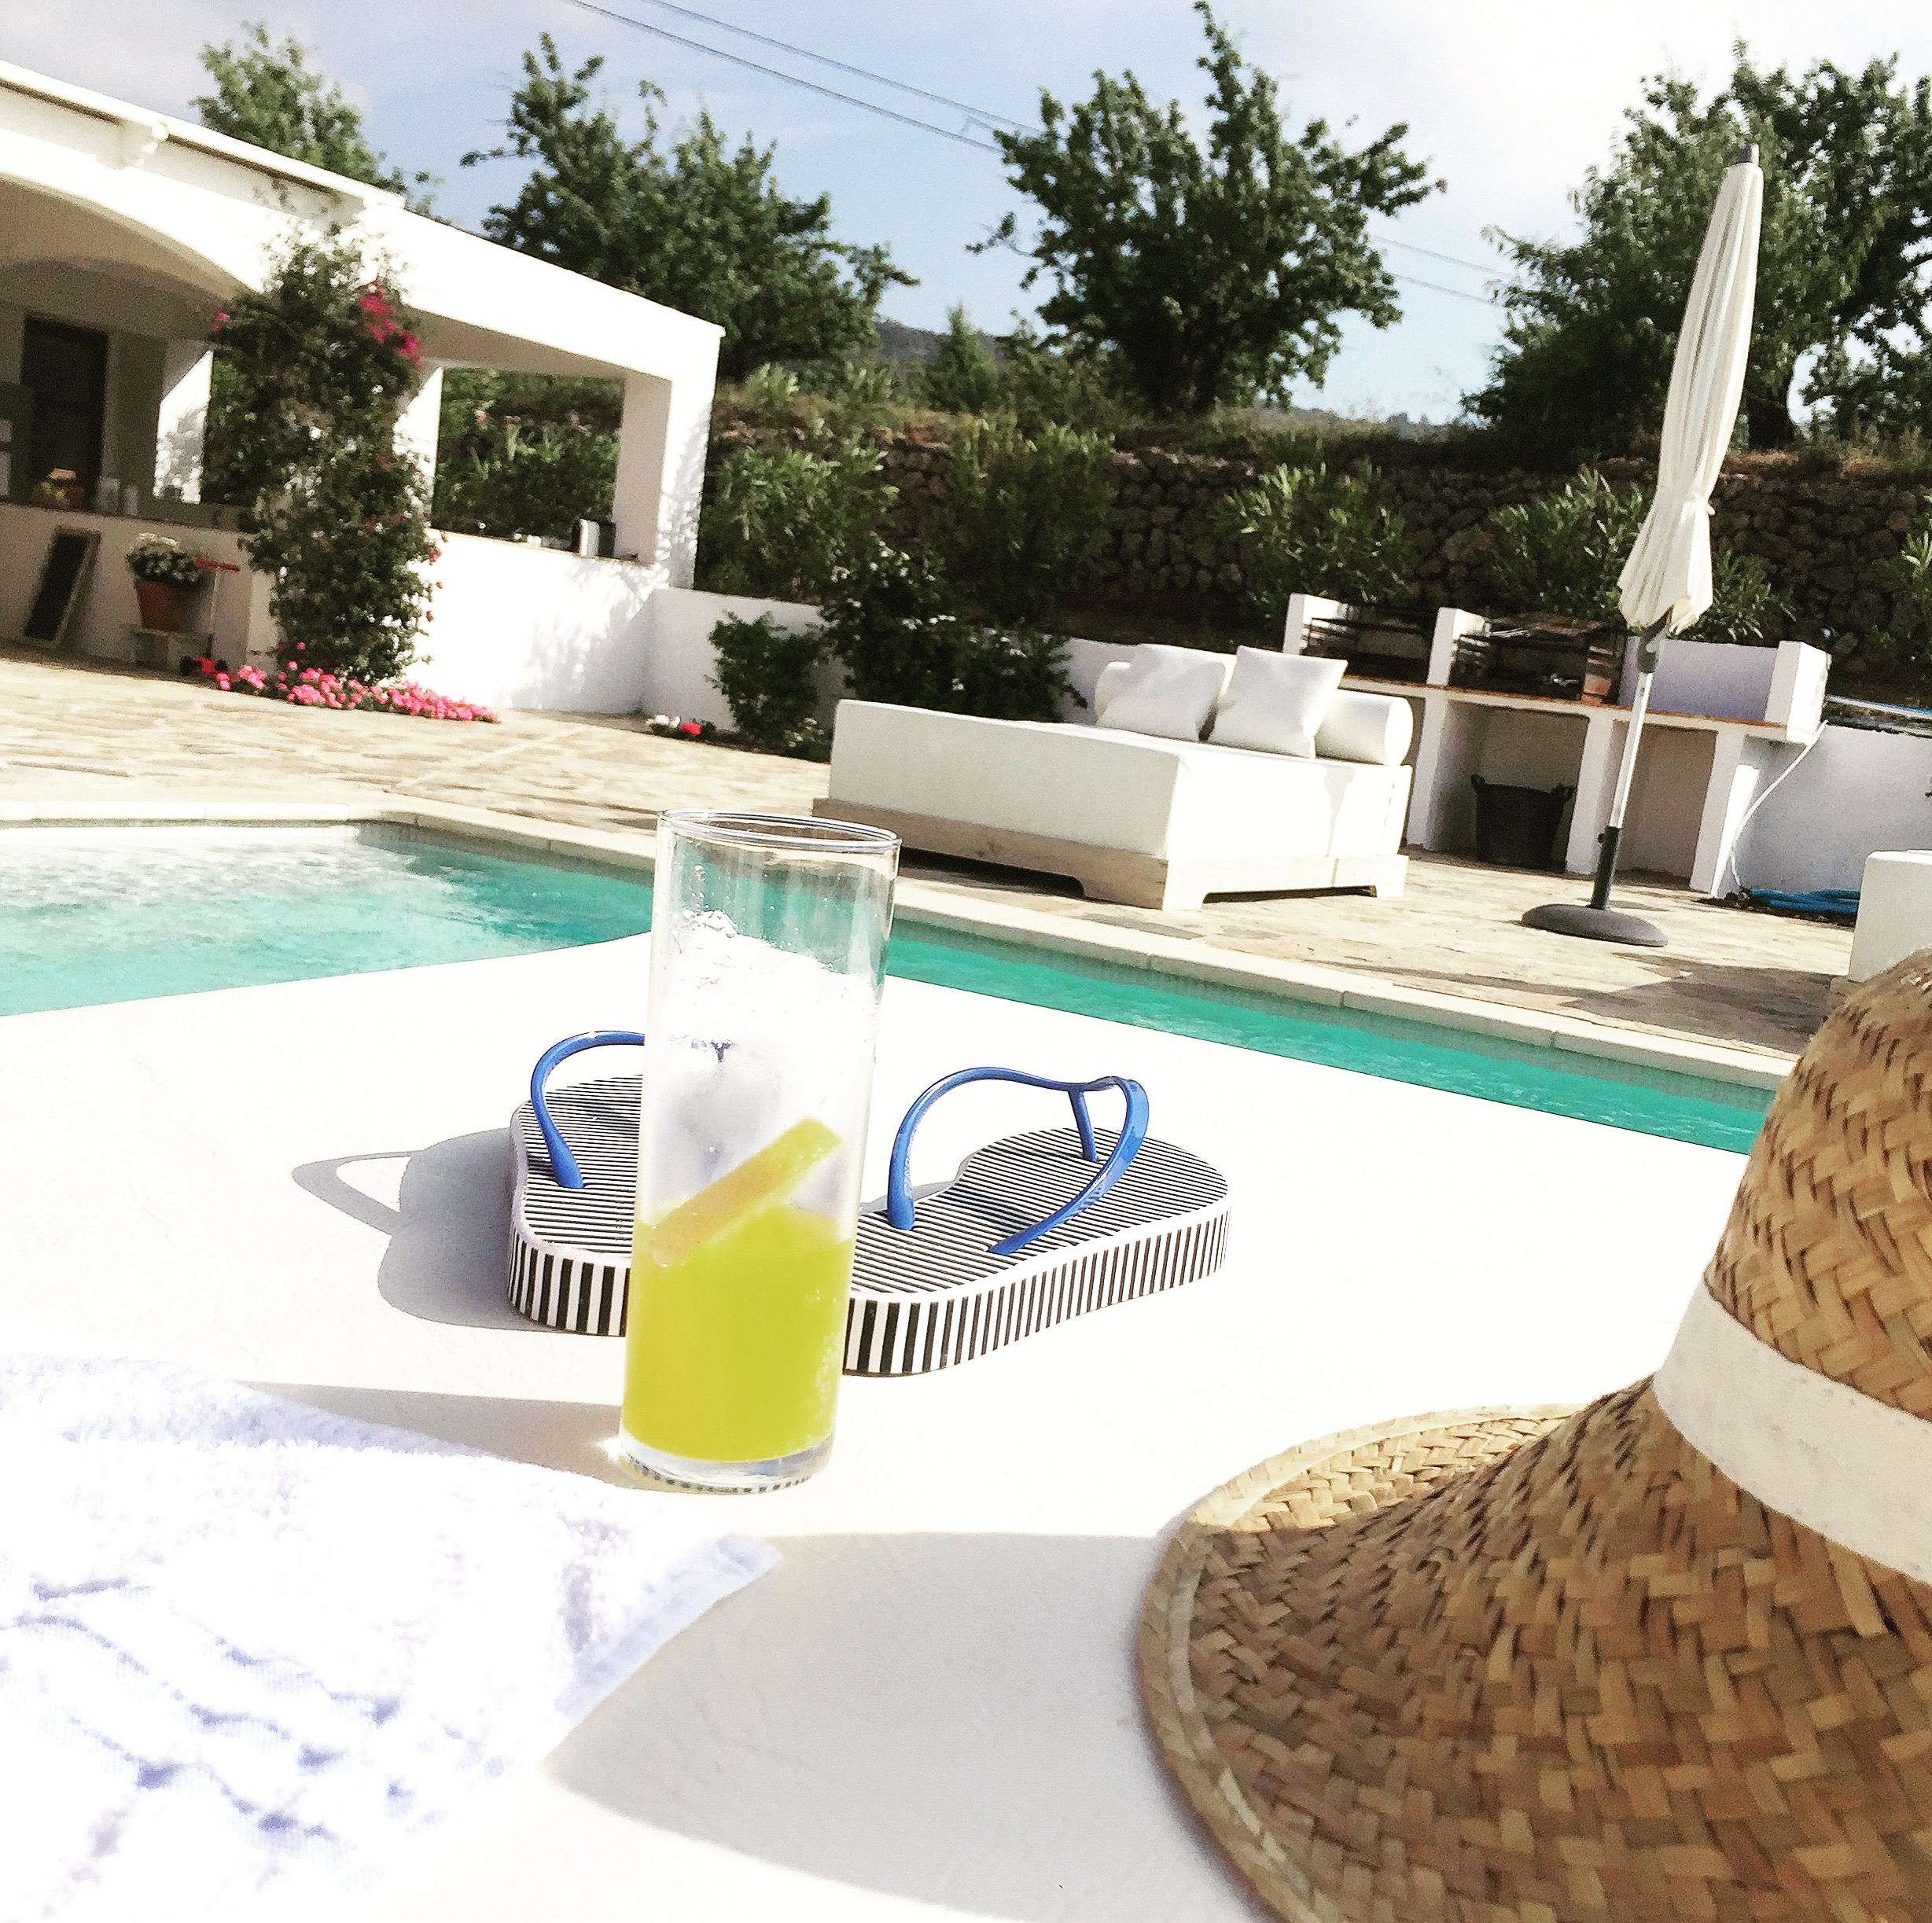 Pool side refreshments and chic pool side essentials!!